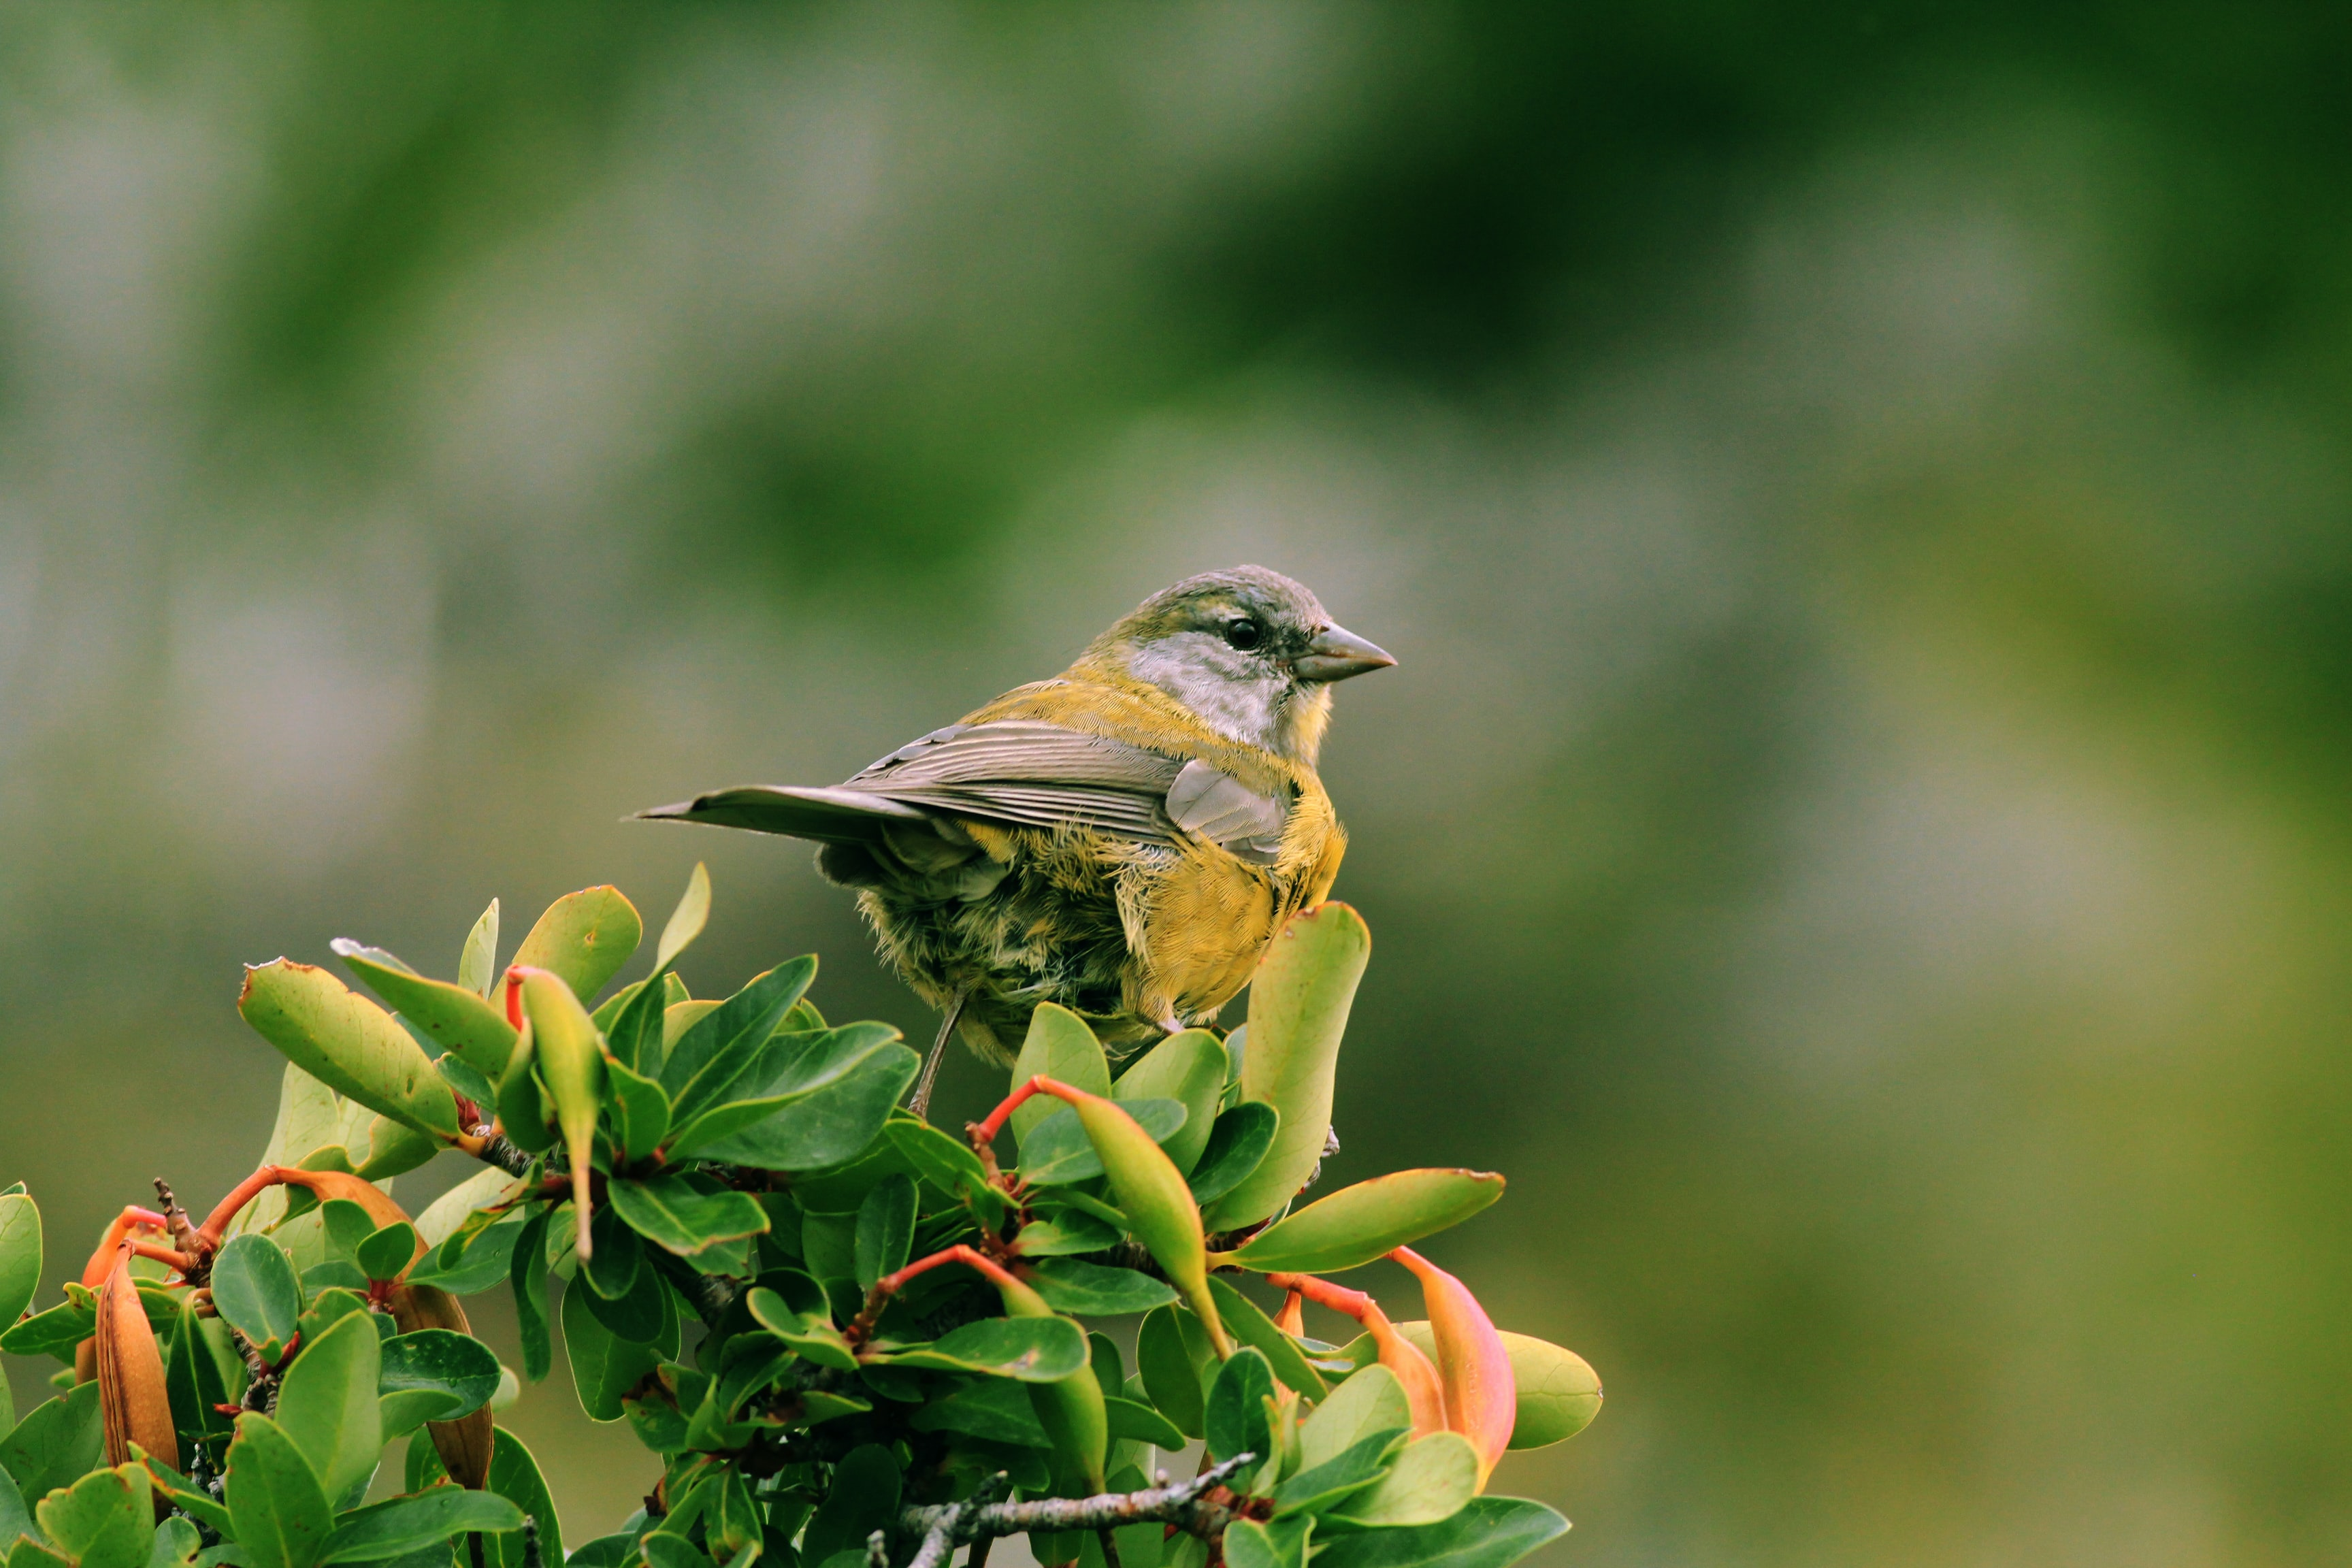 yellow and gray bird on green leaf plant